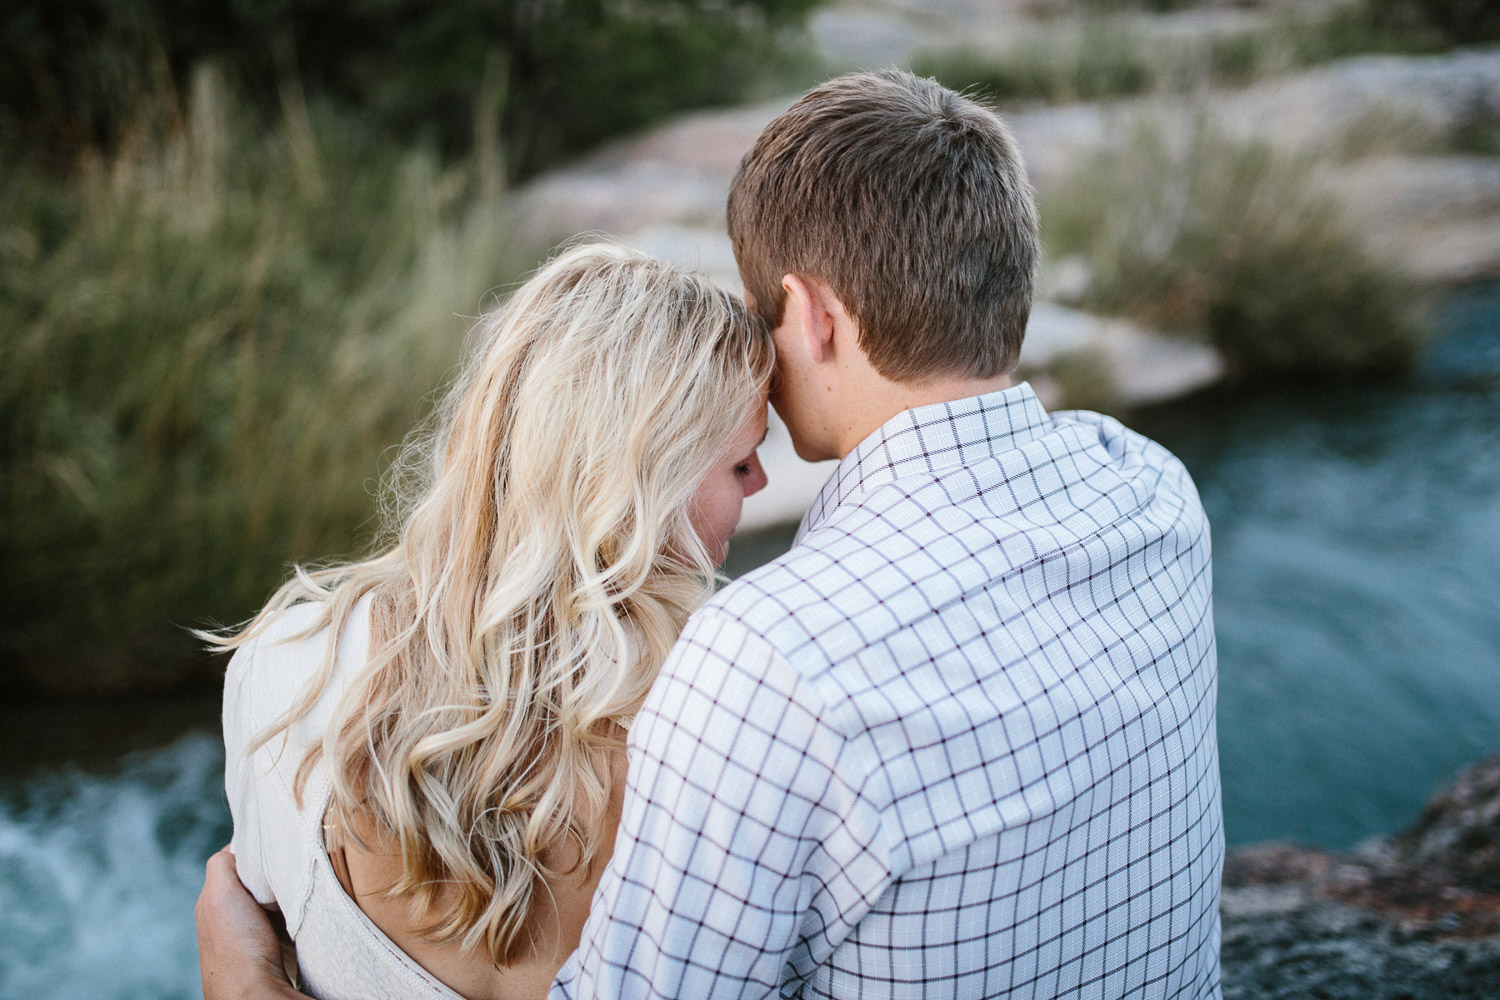 SiouxFalls_BlackHills_Adventure_Engagement_Wedding_Photographer_28.jpg